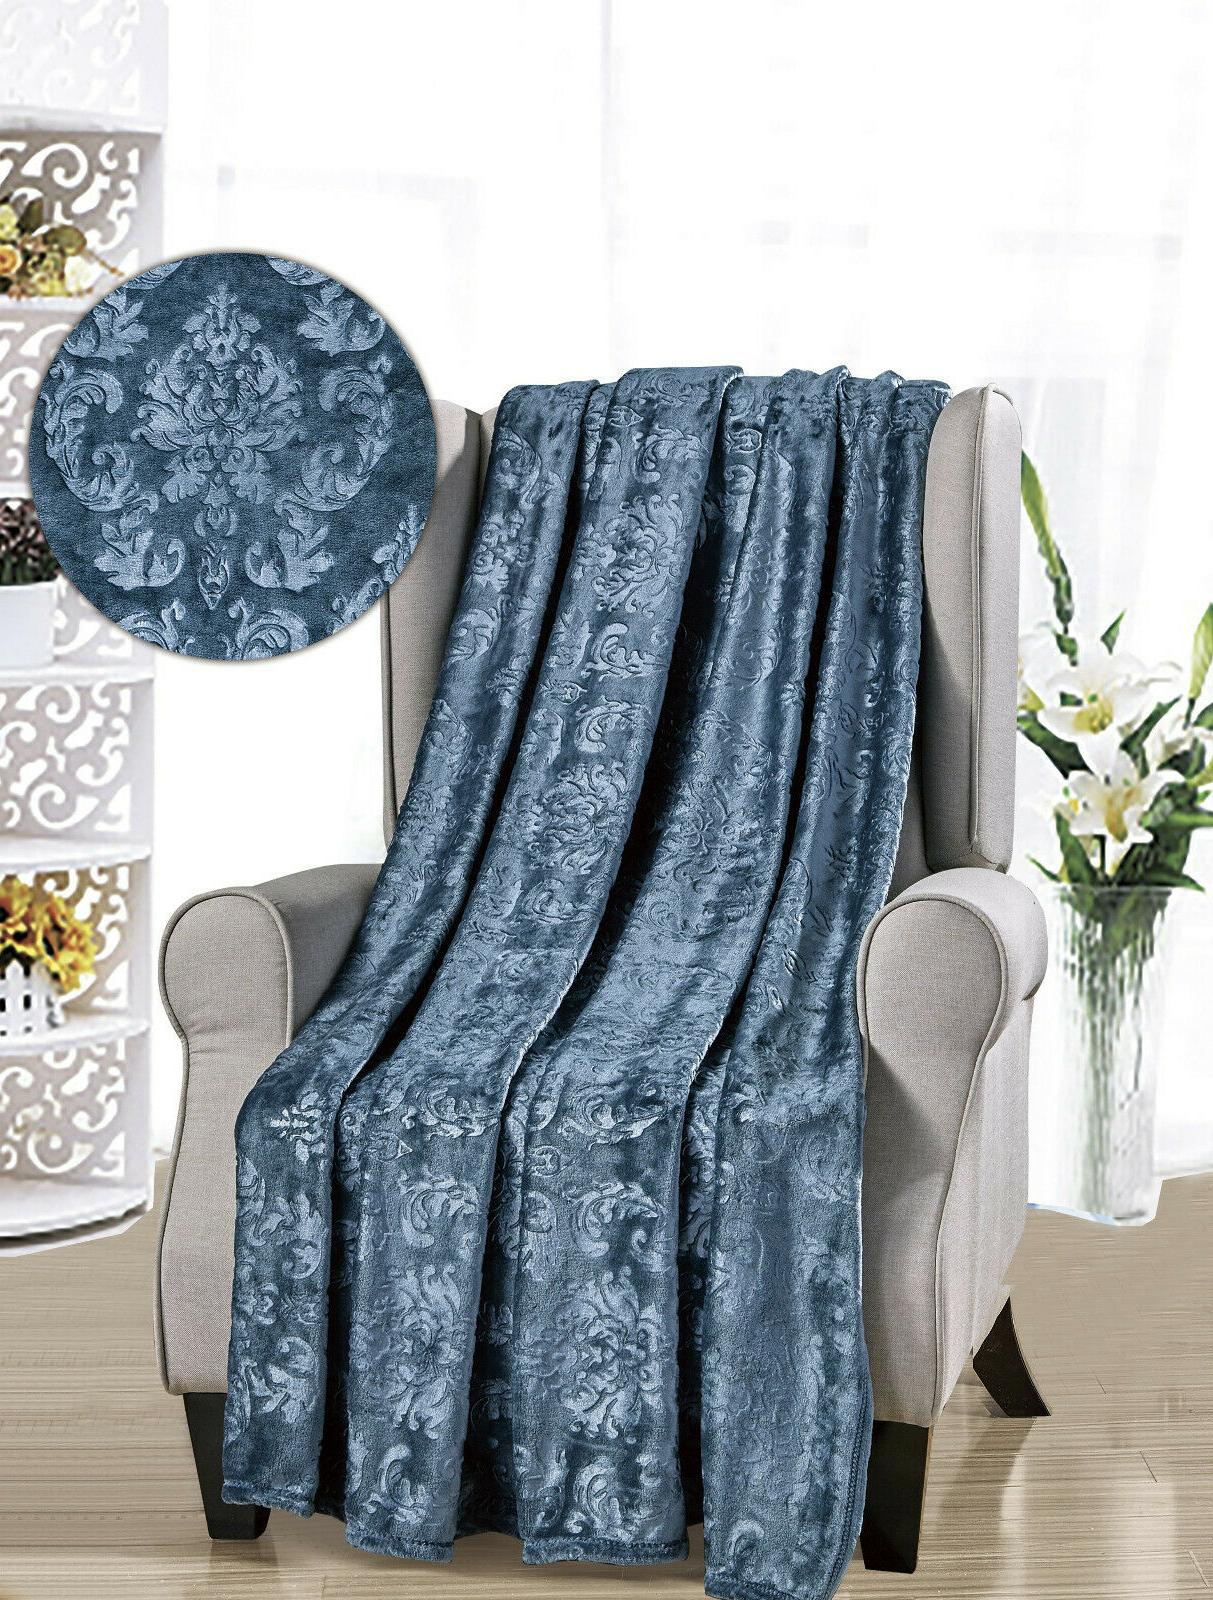 Ultra Plush Damask - Colors